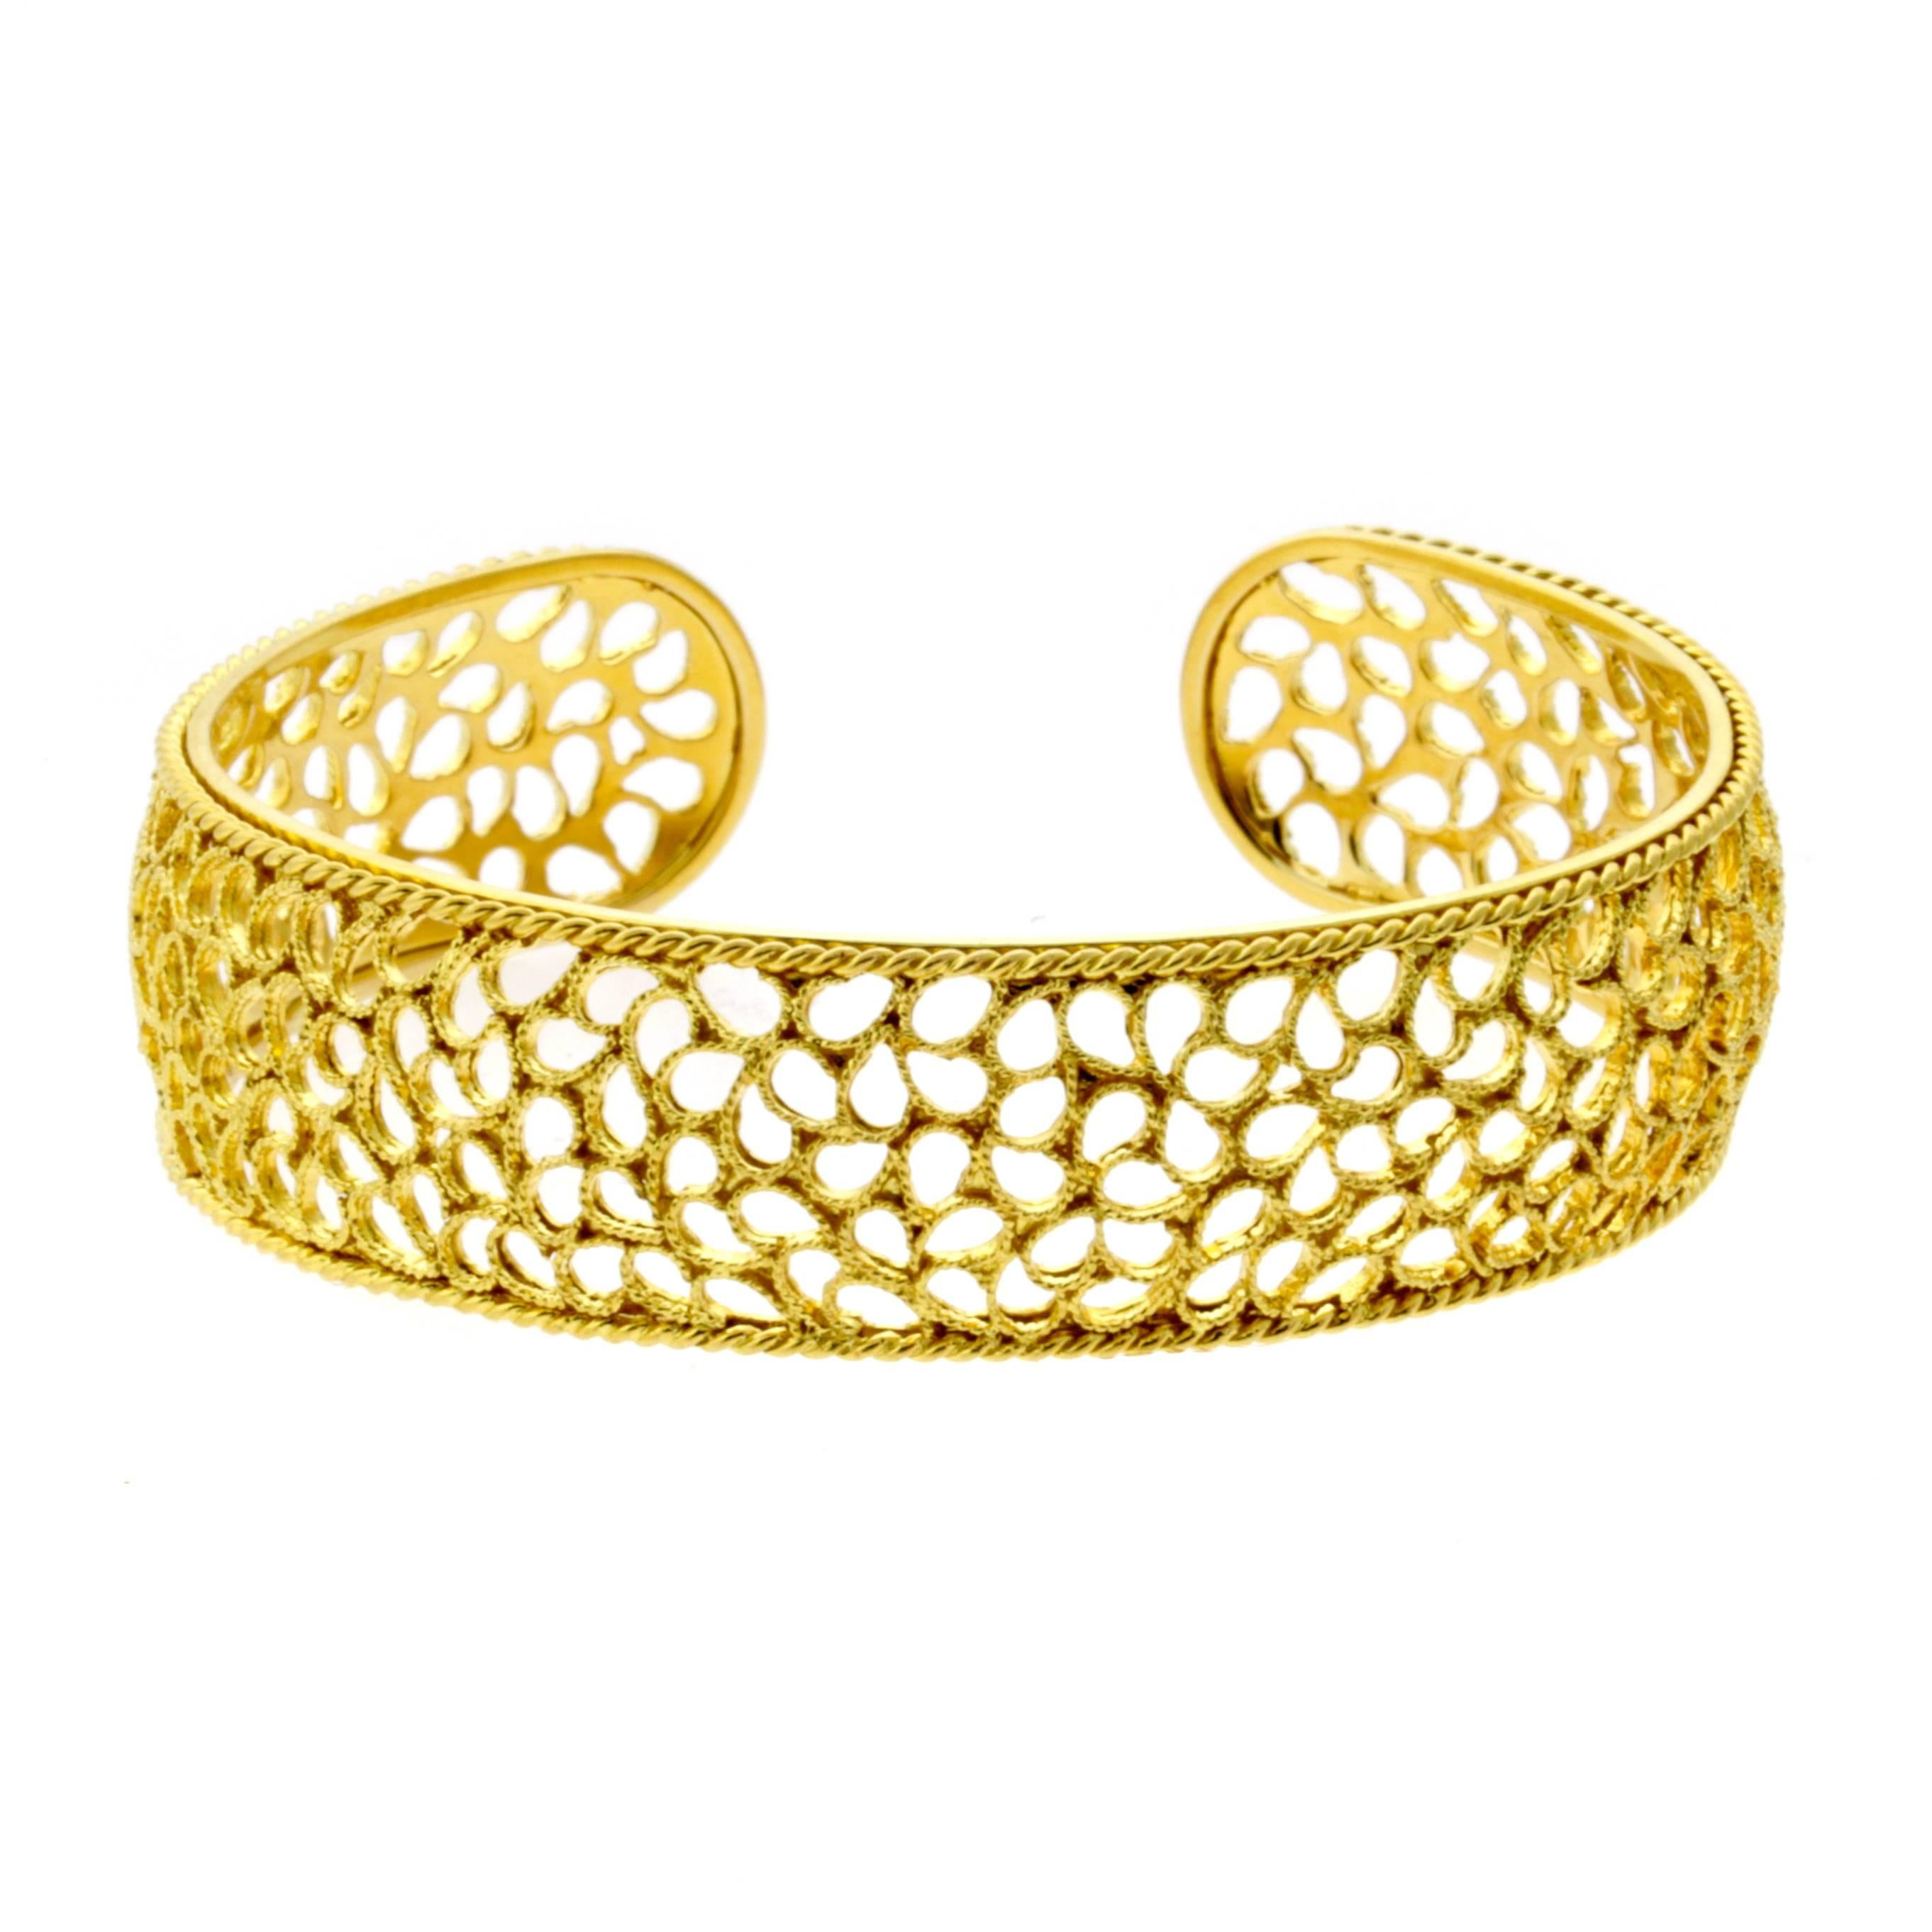 bracelets gucci jewelry bamboo bracelet for bangles id gold bangle at master sale j